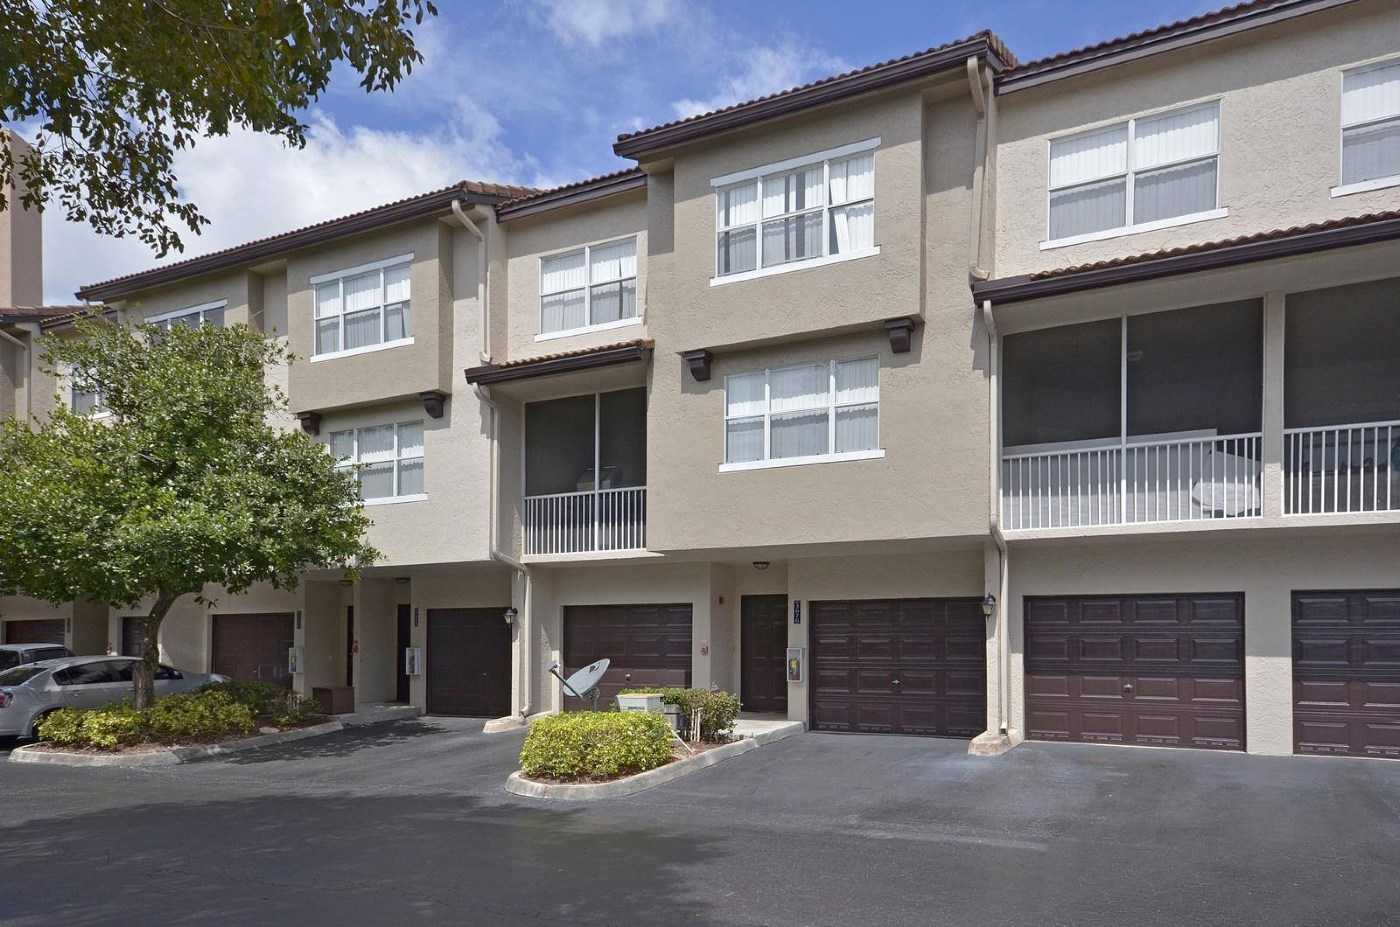 Attached Garages at Windsor Castle Apartments in Coral Springs, Florida